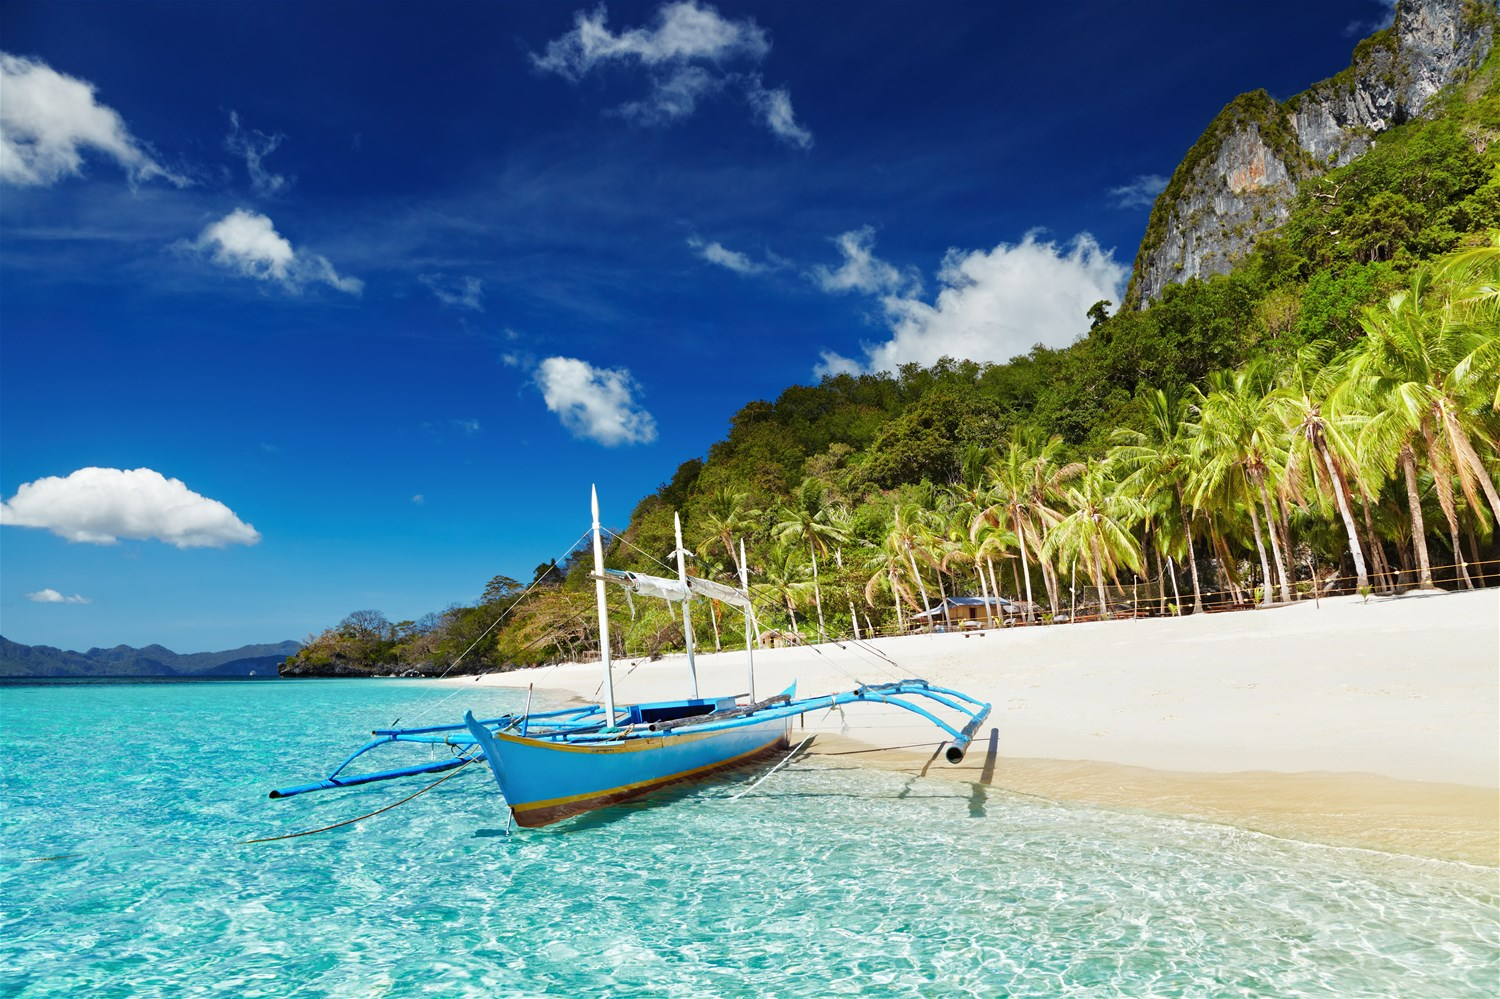 Fabulous Philippines - Best Things to Do